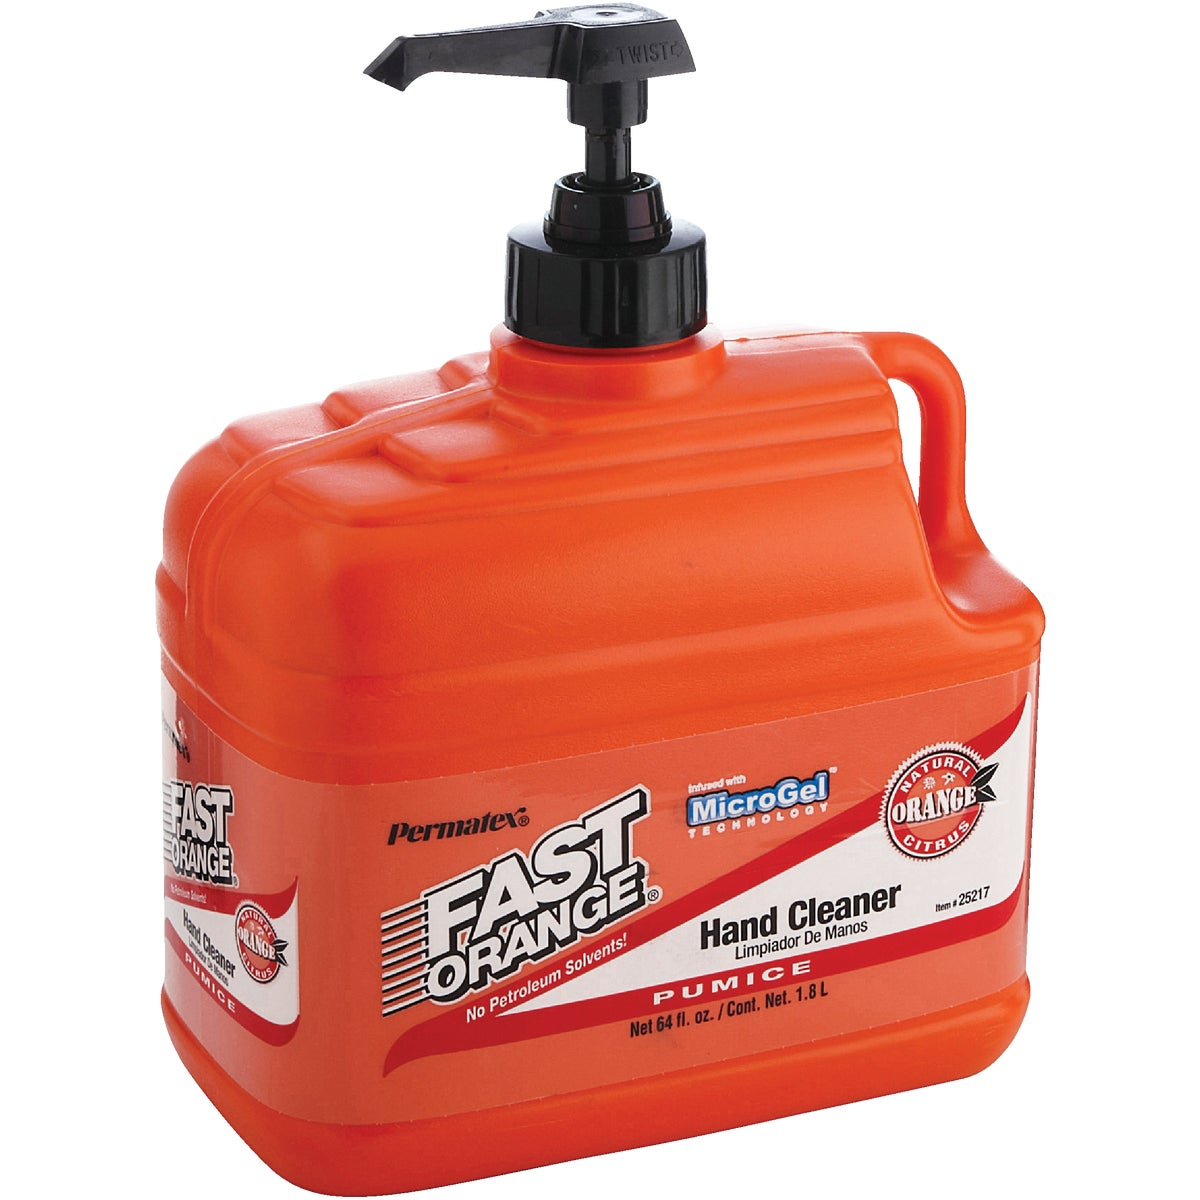 1/2GAL PM HAND CLEANER - 25217 by Itw Global Brands